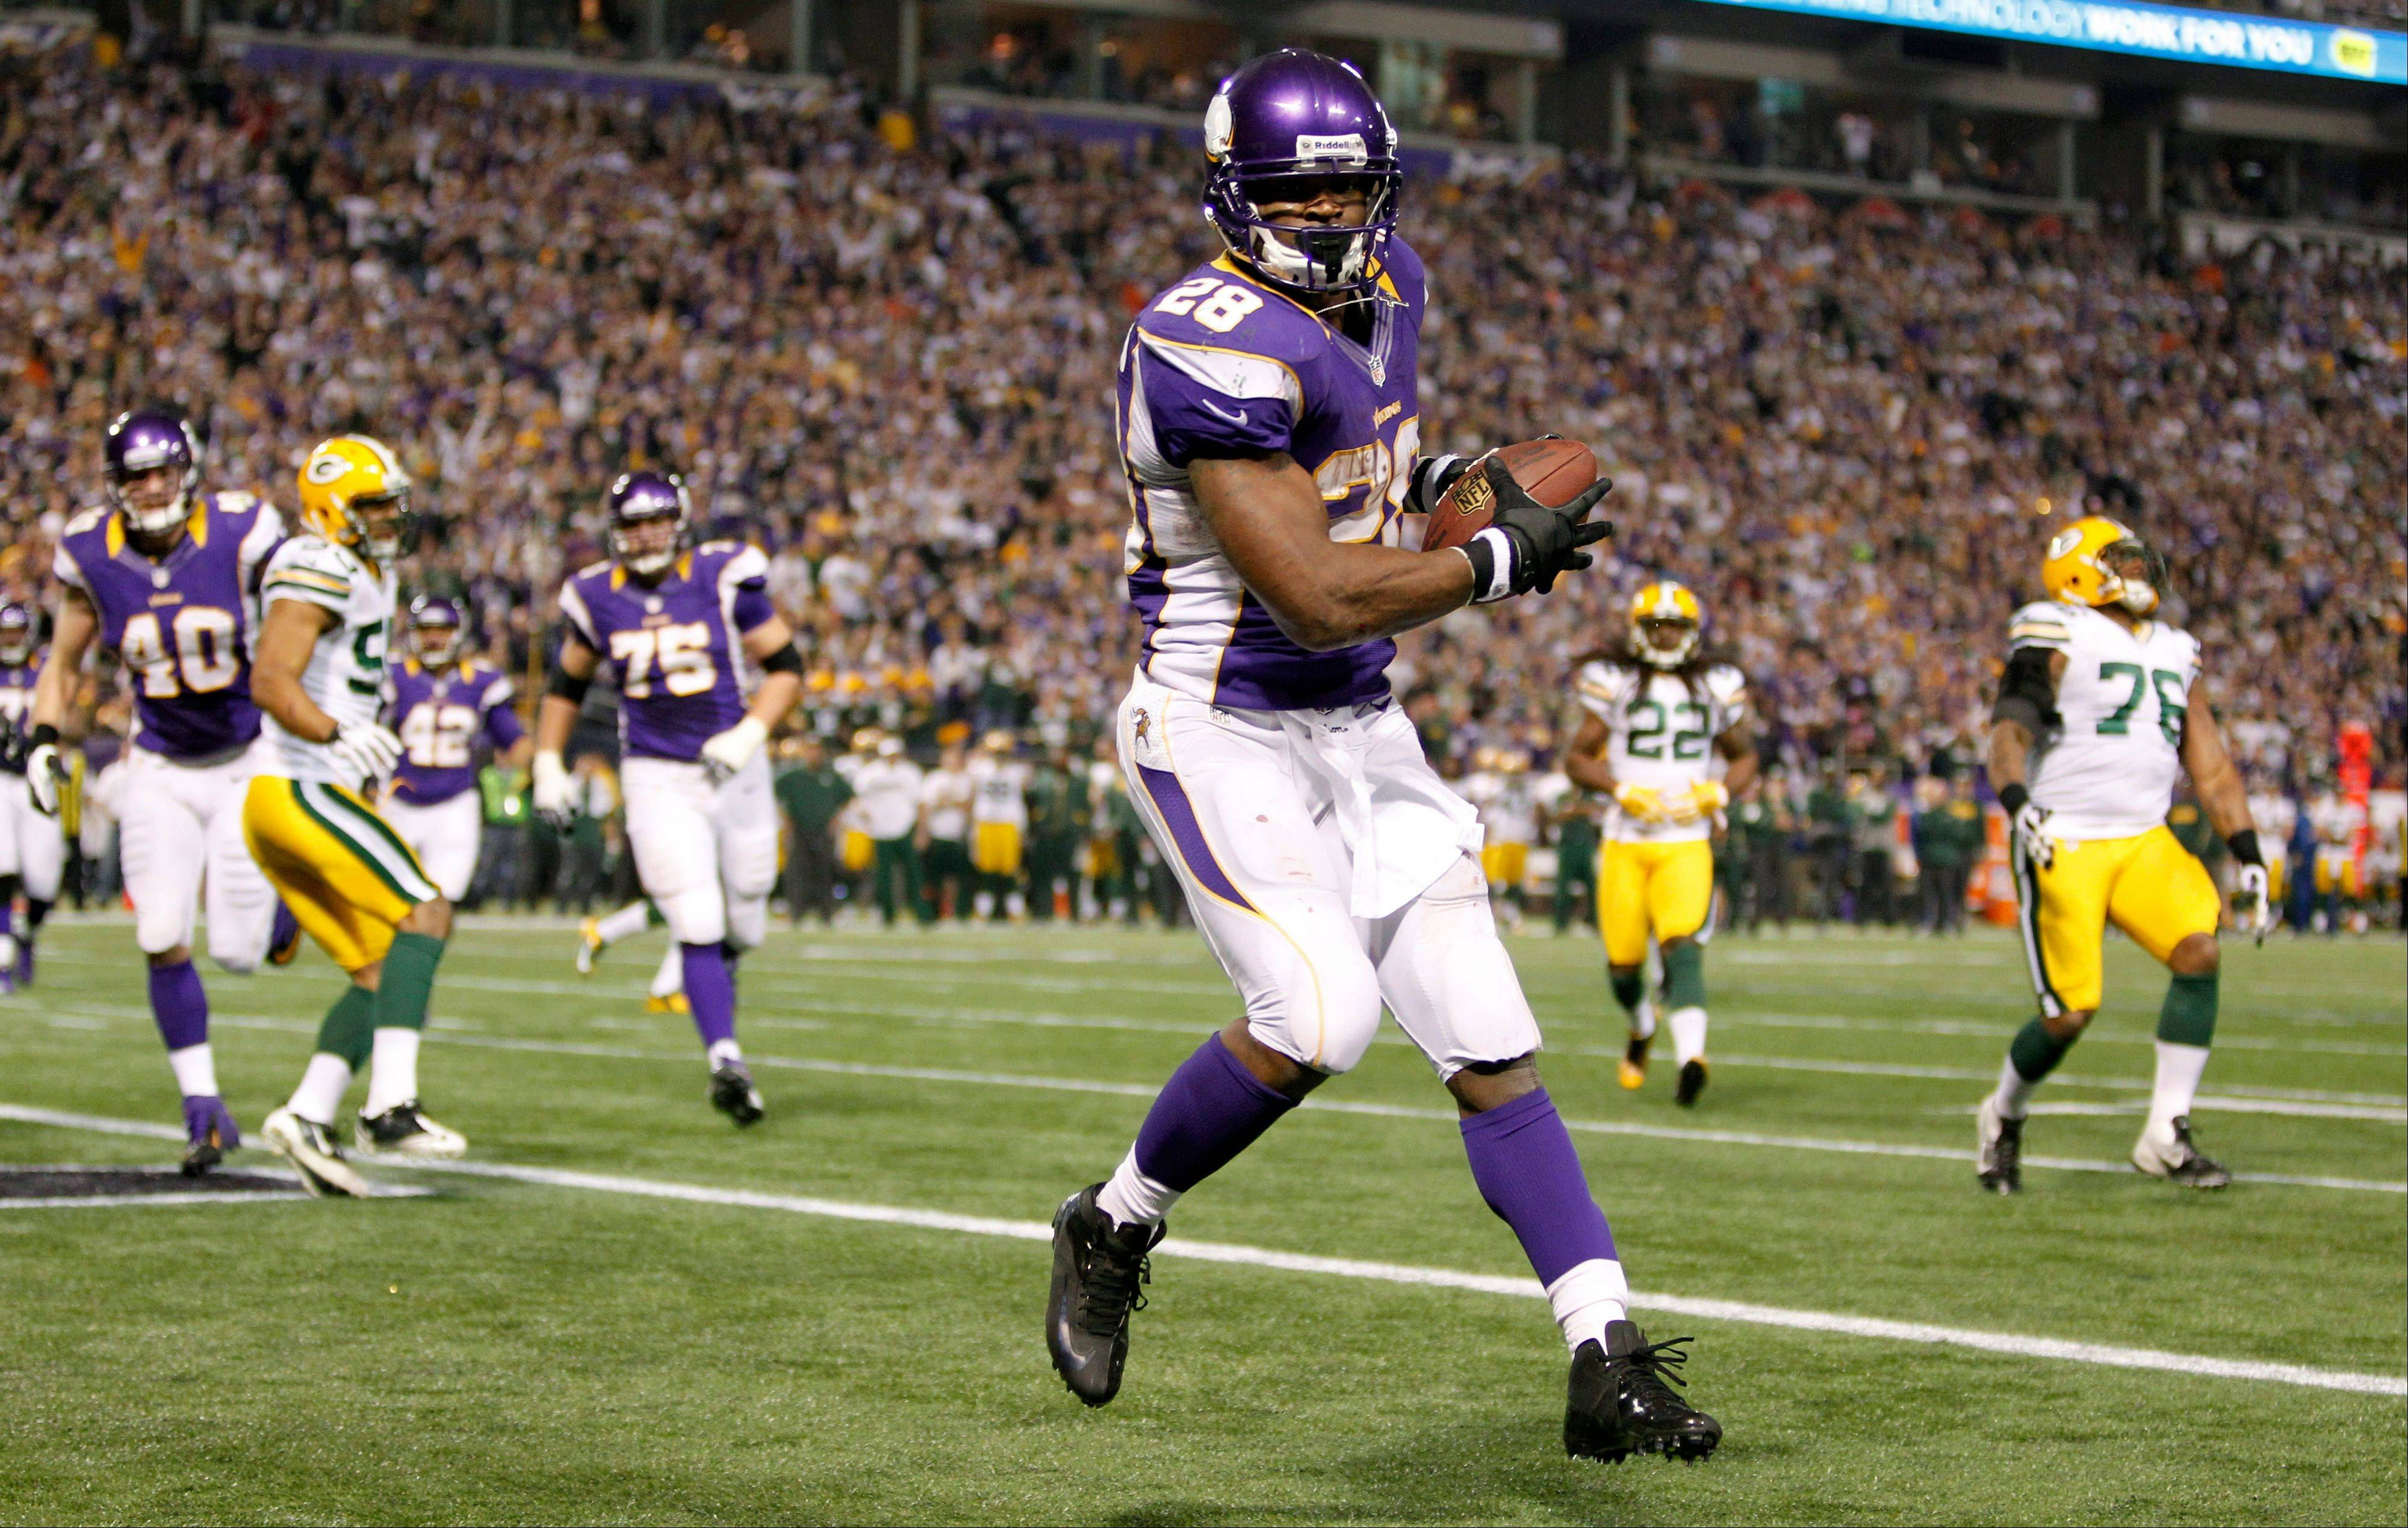 Minnesota Vikings running back Adrian Peterson catches a two-yard touchdown pass during the second half of an NFL football game against the Green Bay Packers Sunday, Dec. 30, 2012, in Minneapolis.